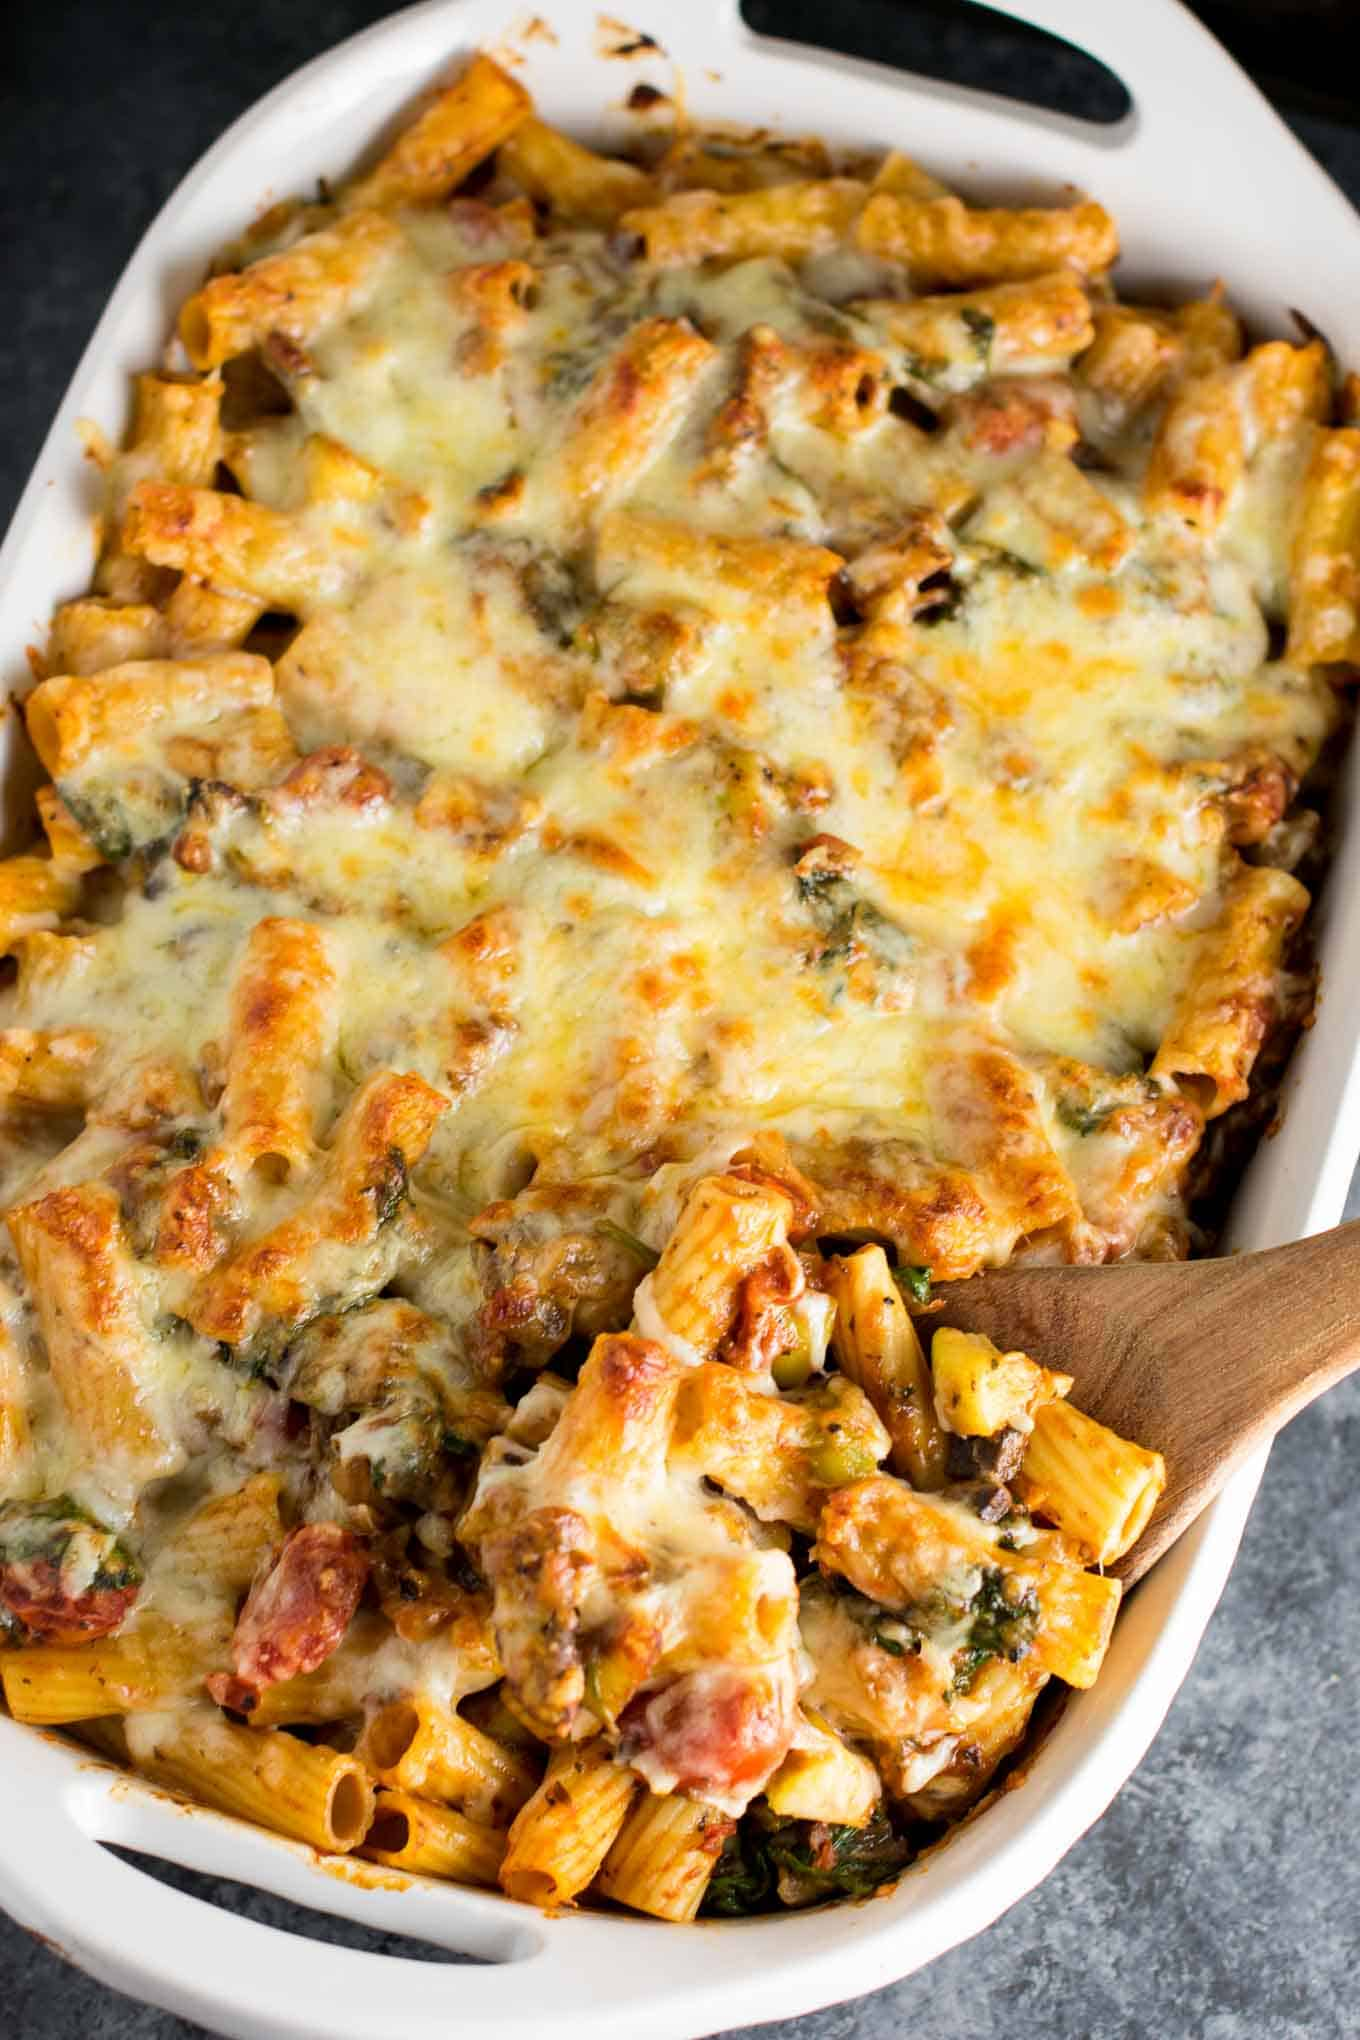 veggie lover's baked rigatoni recipe packed full of cherry tomatoes, onions, garlic, mushrooms, bell peppers, zucchini, and spinach. A hearty and delicious vegetarian dinner!